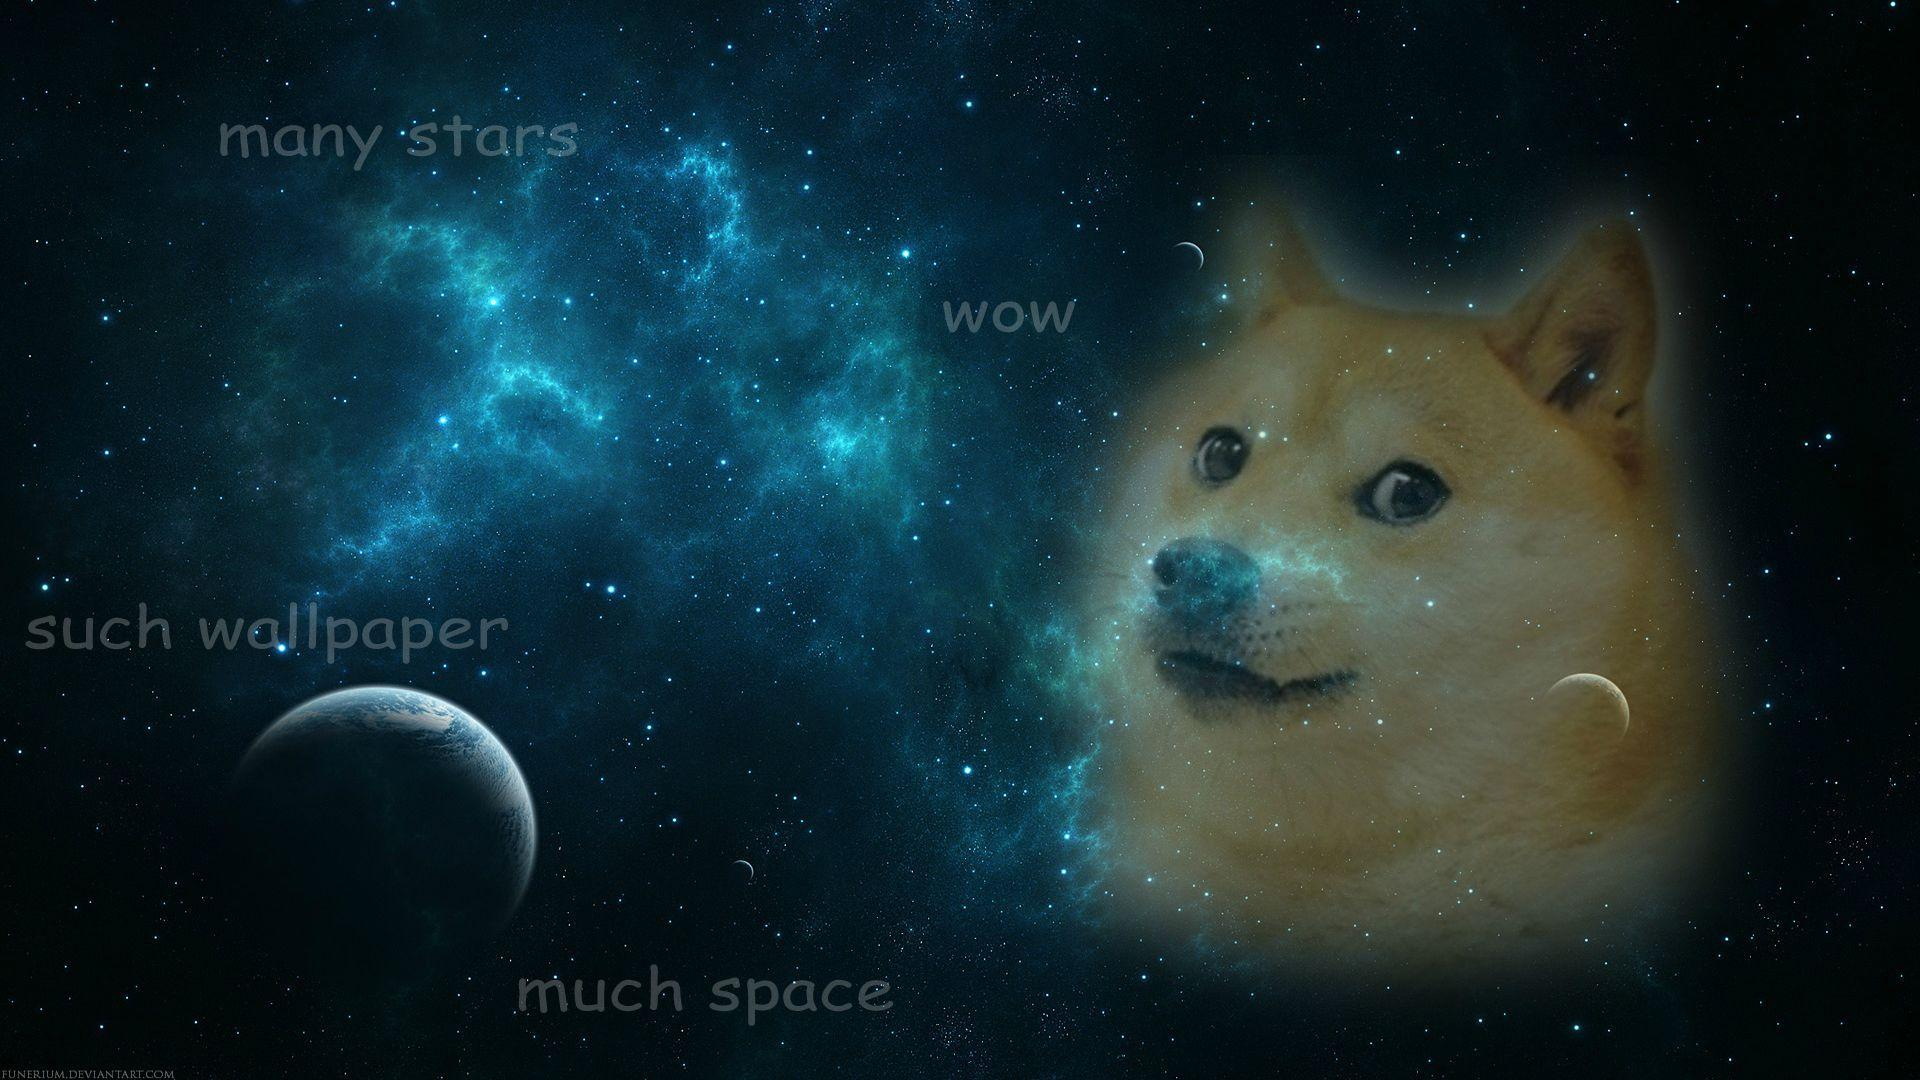 Doge, Wallpapers and Search on Pinterest